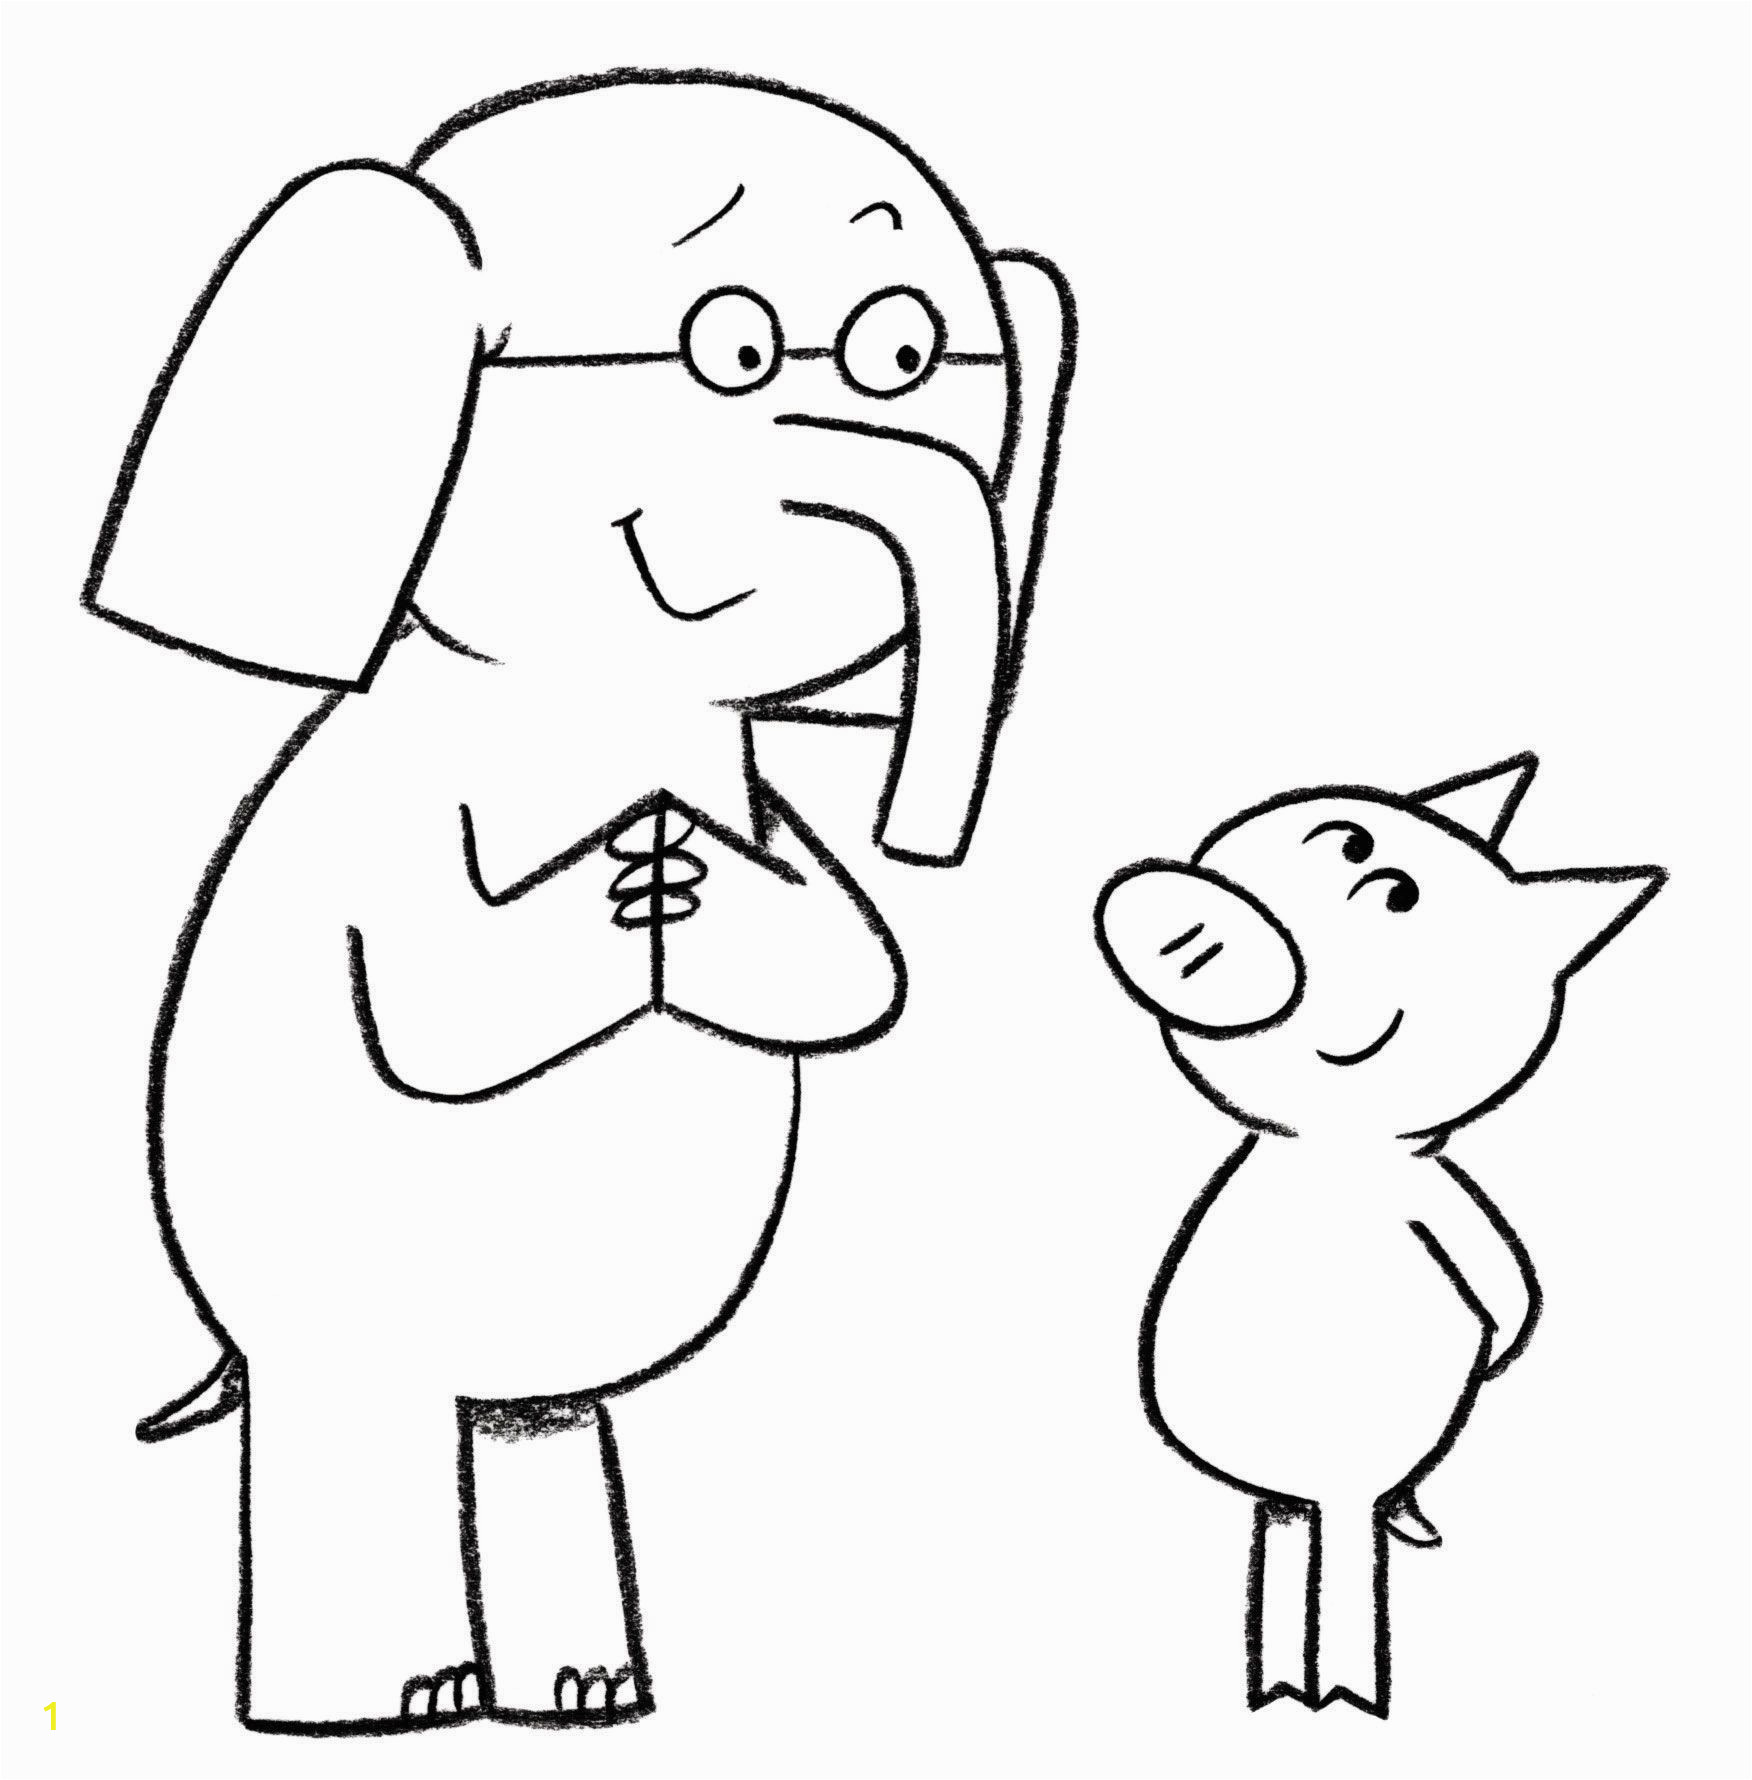 Piggie and Gerald Coloring Pages Download or Print This Amazing Coloring Page Elephant and